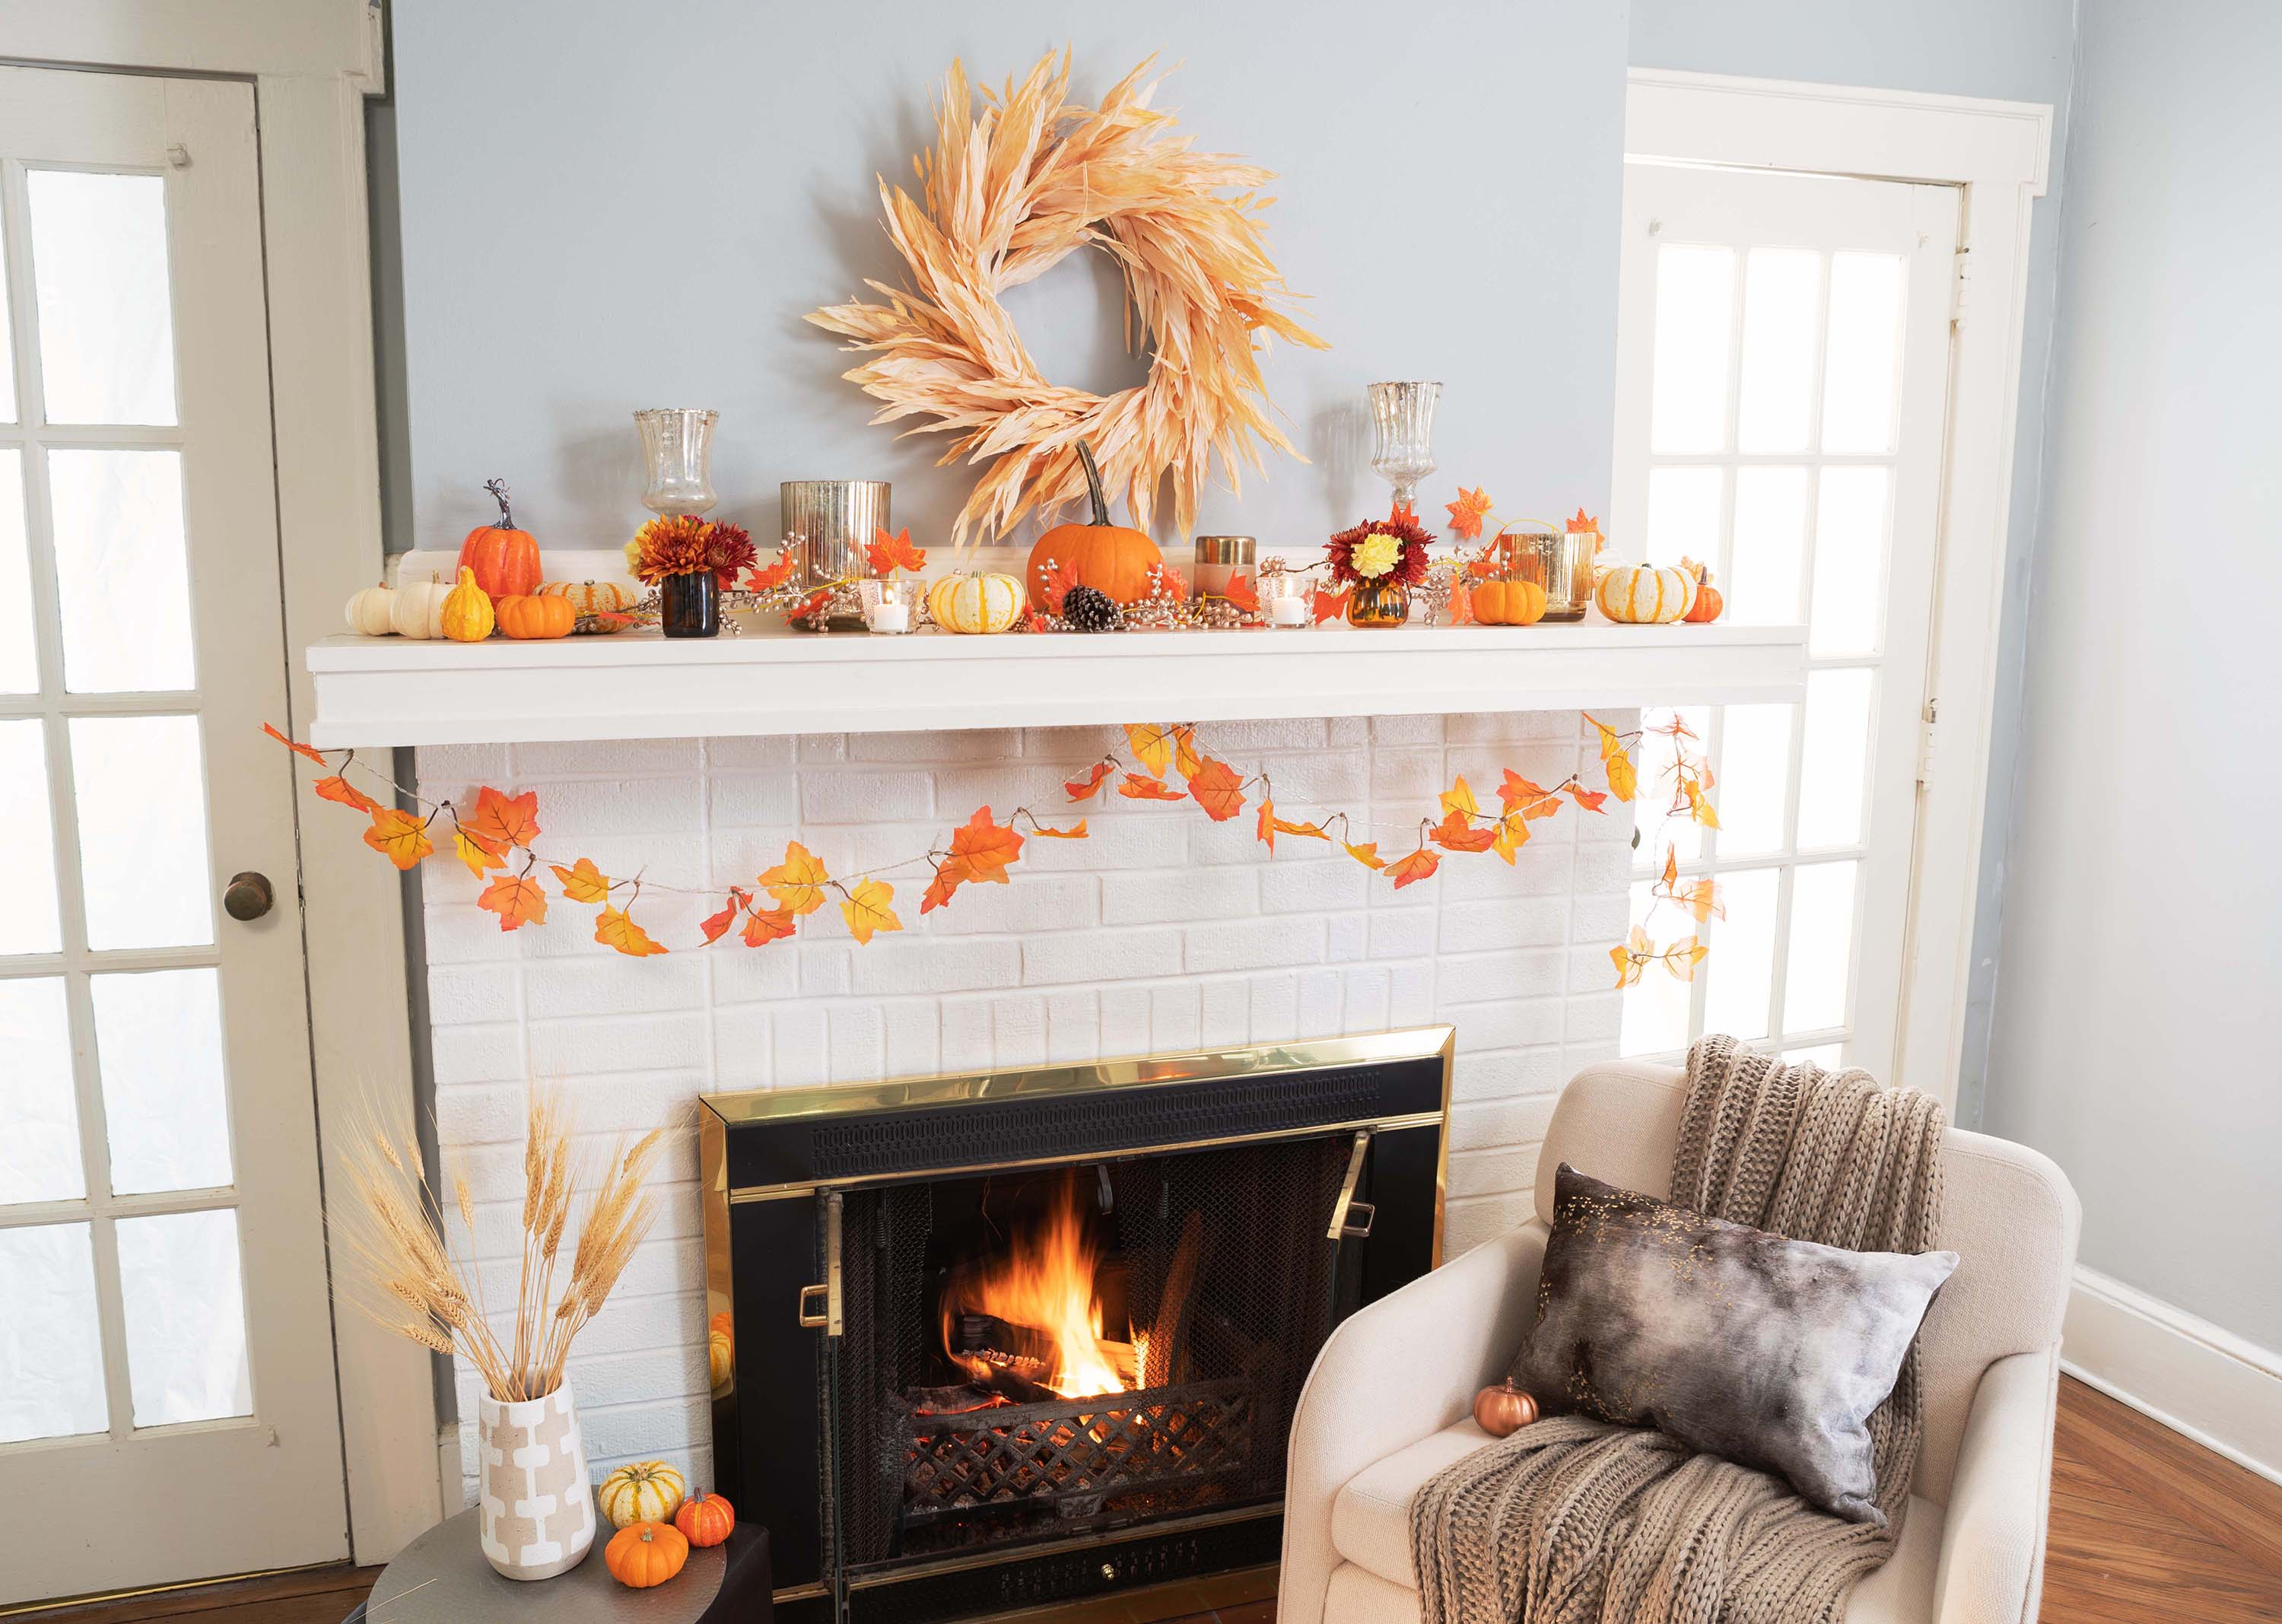 A fireplace mantel with fall decorations